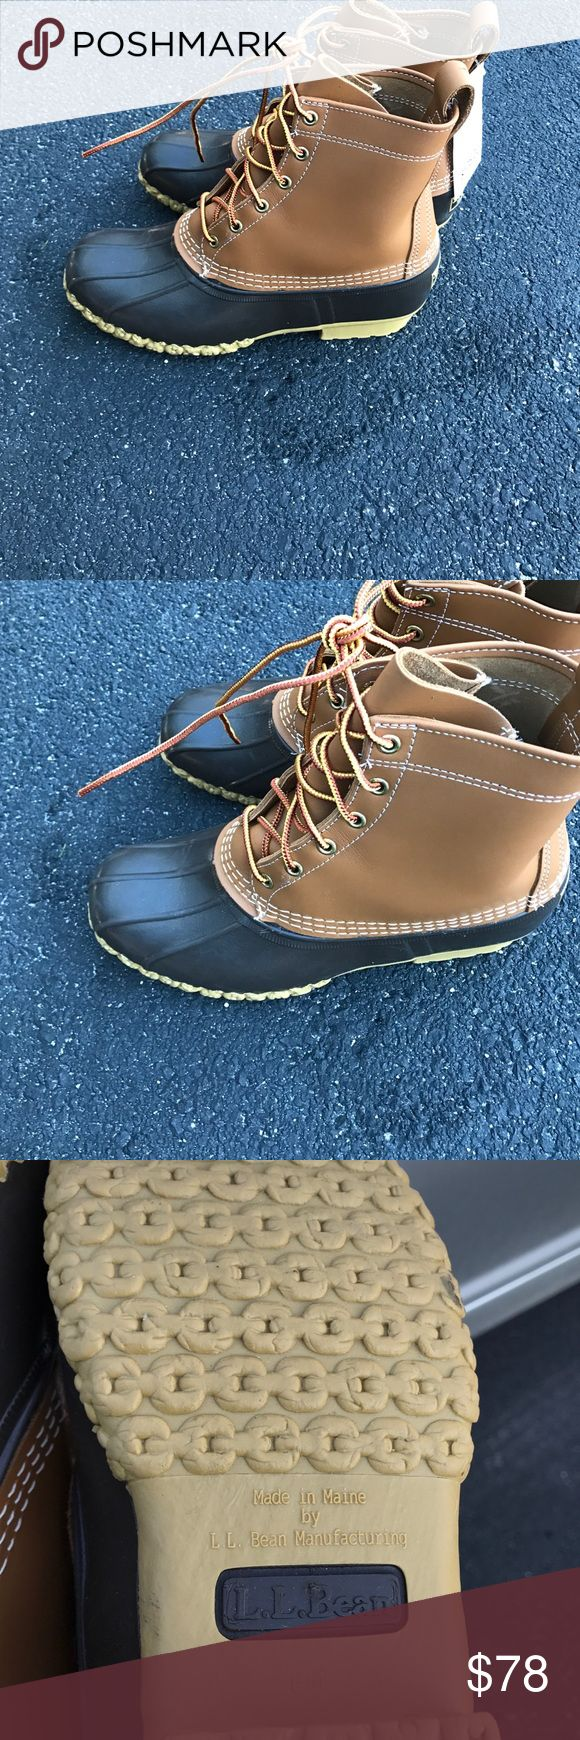 L.L. Bean Boots Women's Size 9 NWT L.L. Bean boots size 10 for women. They do have a mark from being at the outlet. It's on the left heel. Barely noticeable when wearing the boots. The tag says 9 on it but the boot is a 10 based on the letter on the bottom of the boot. L.L. Bean Shoes Winter & Rain Boots